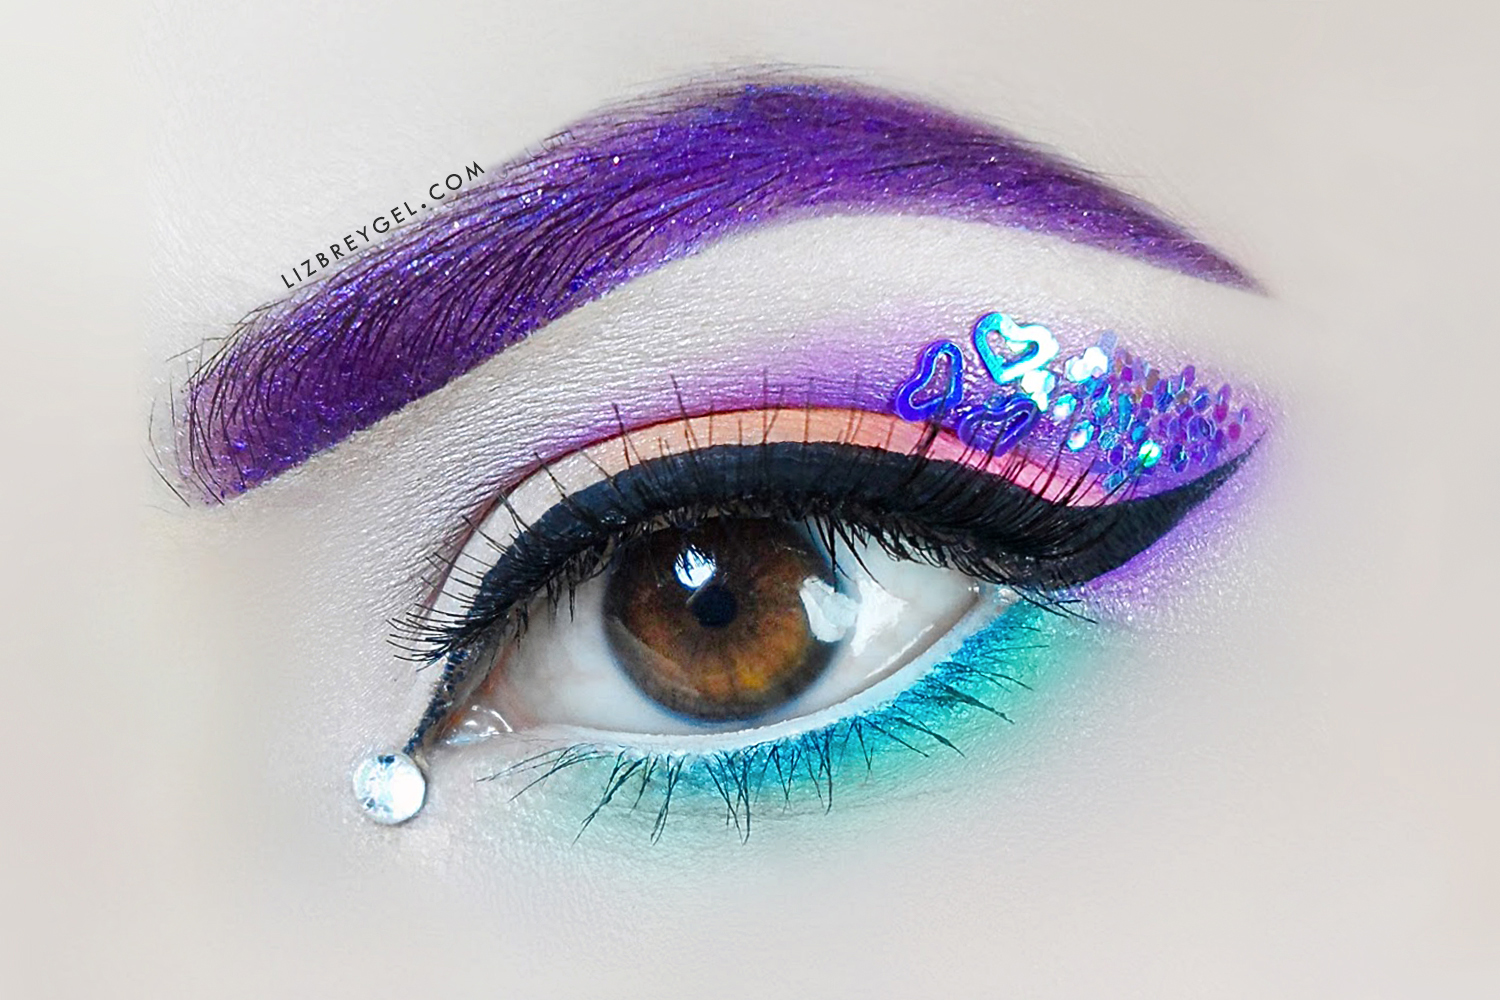 a close up of eye with bright, unicorn makeup